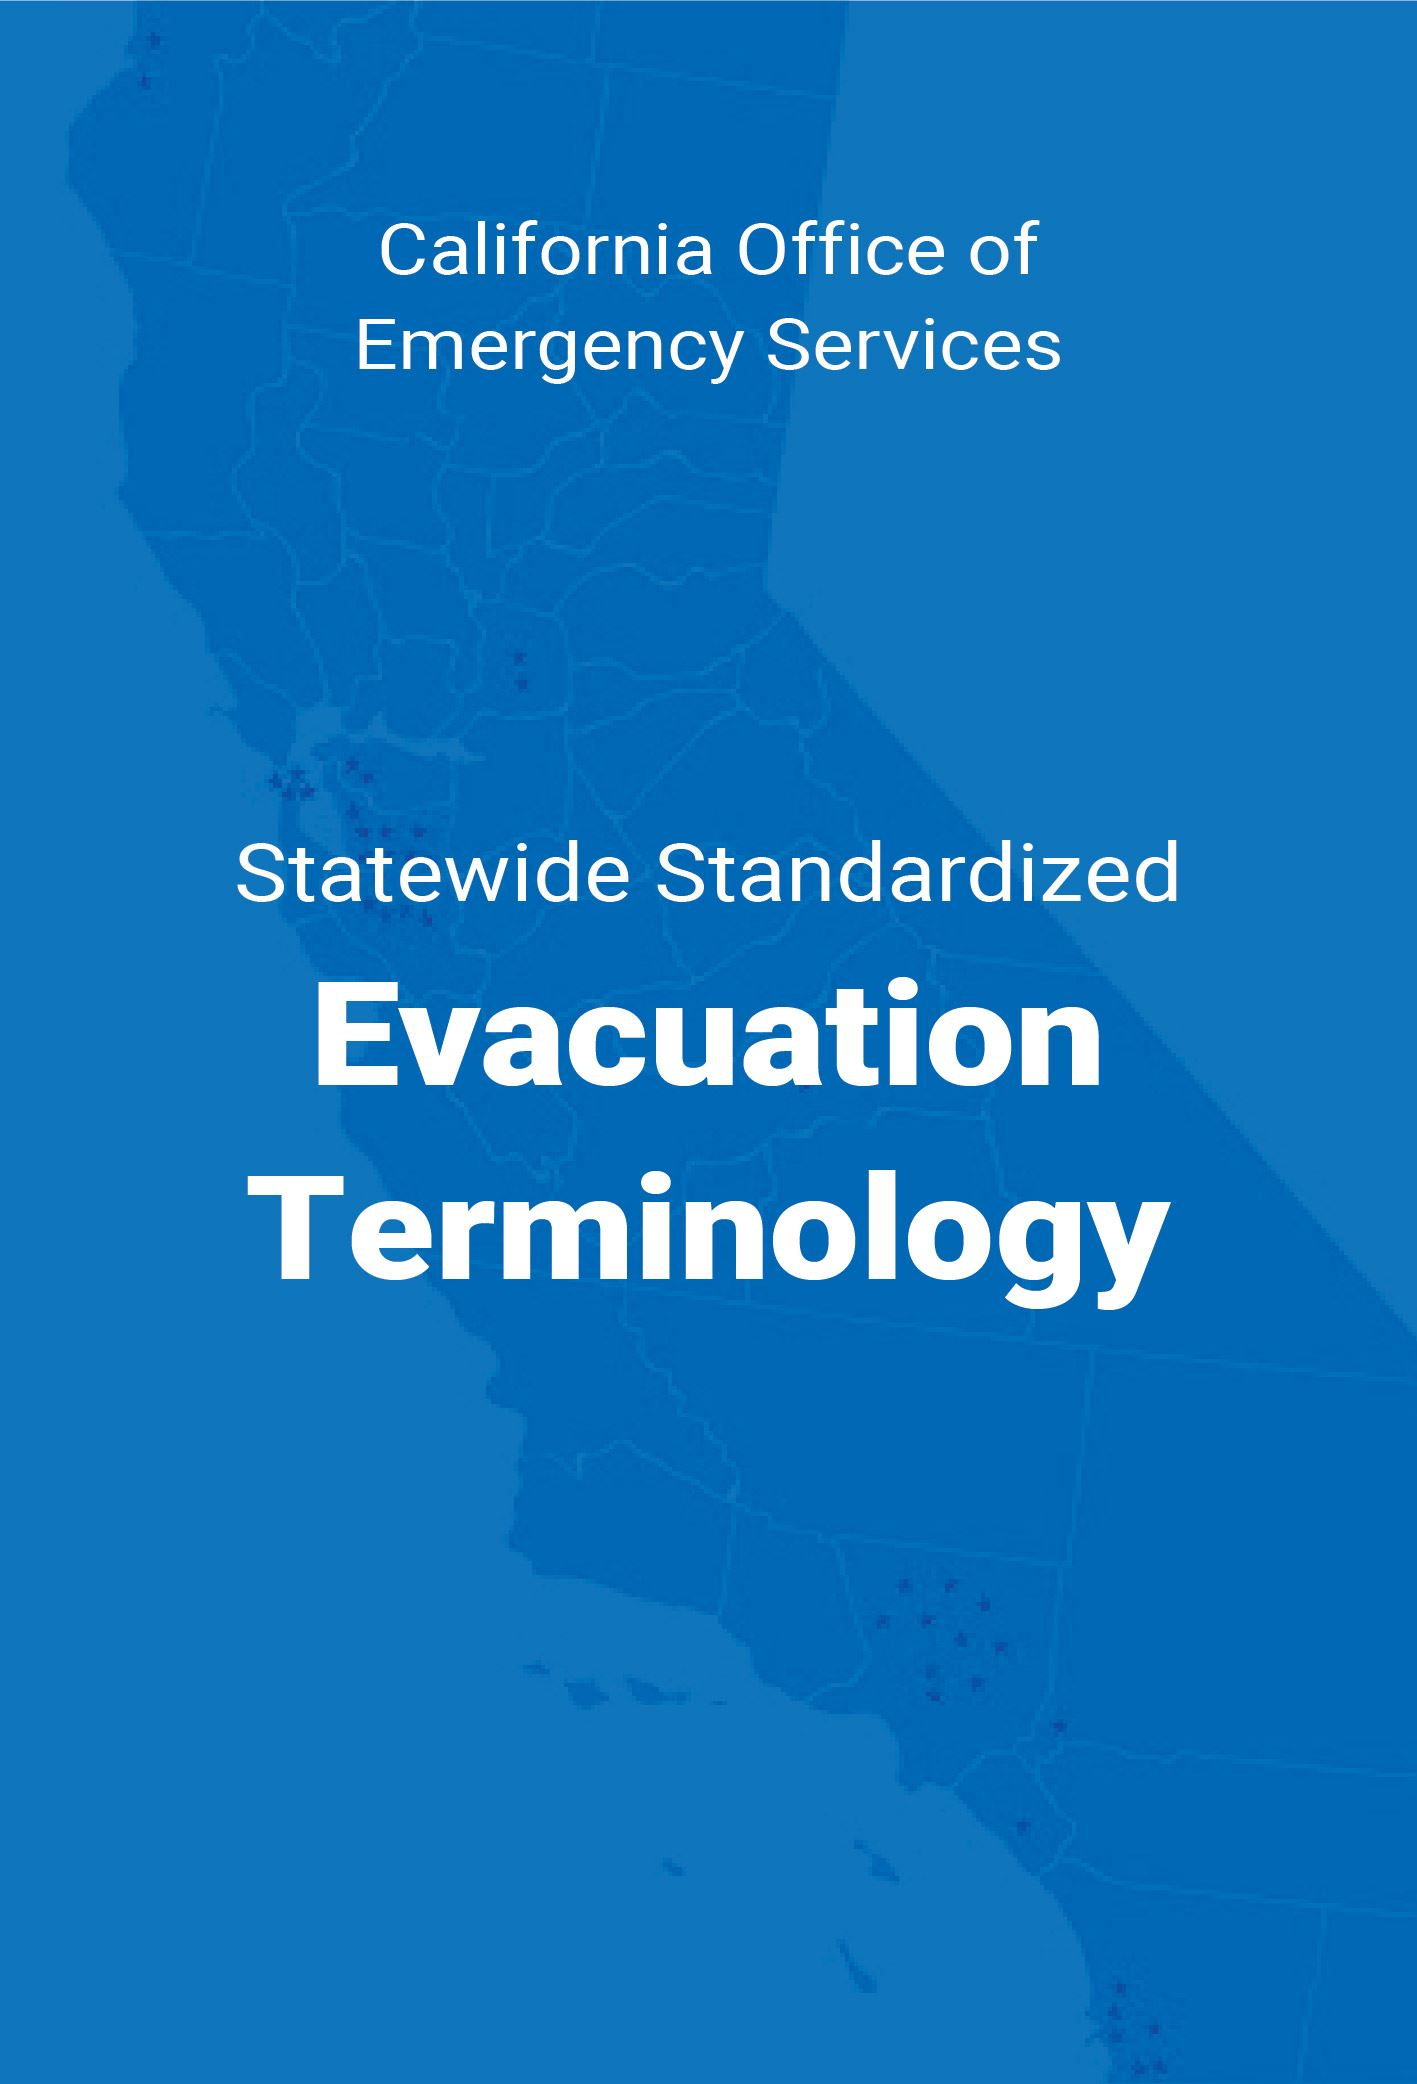 Cal oes standardize terms NEWSFLASH